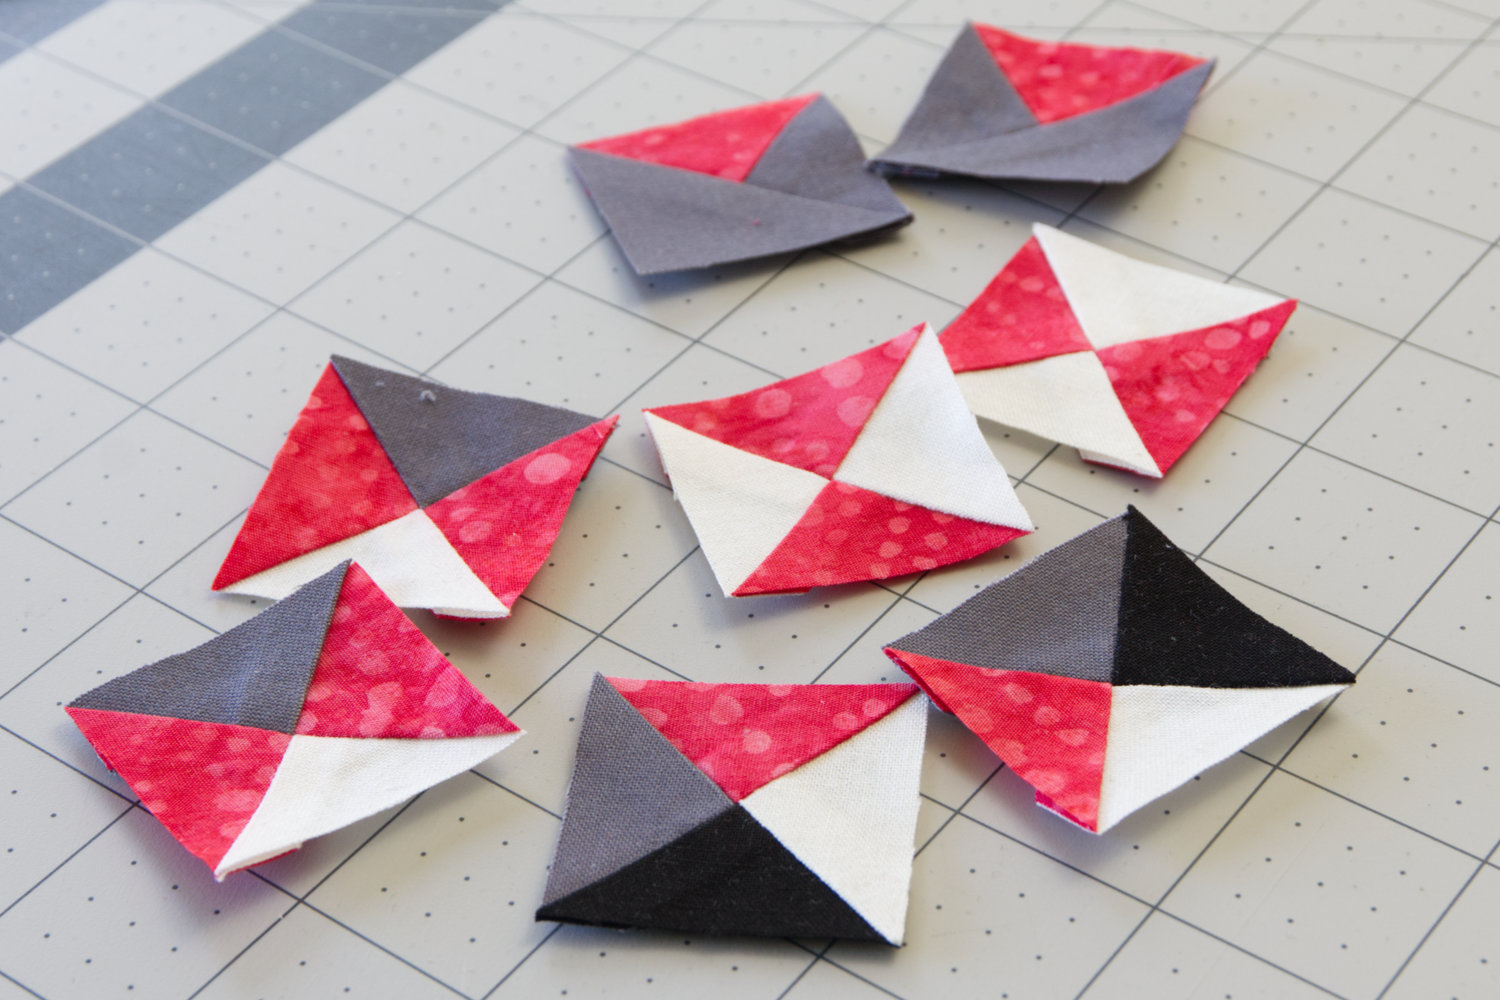 A variety of quarter square triangles